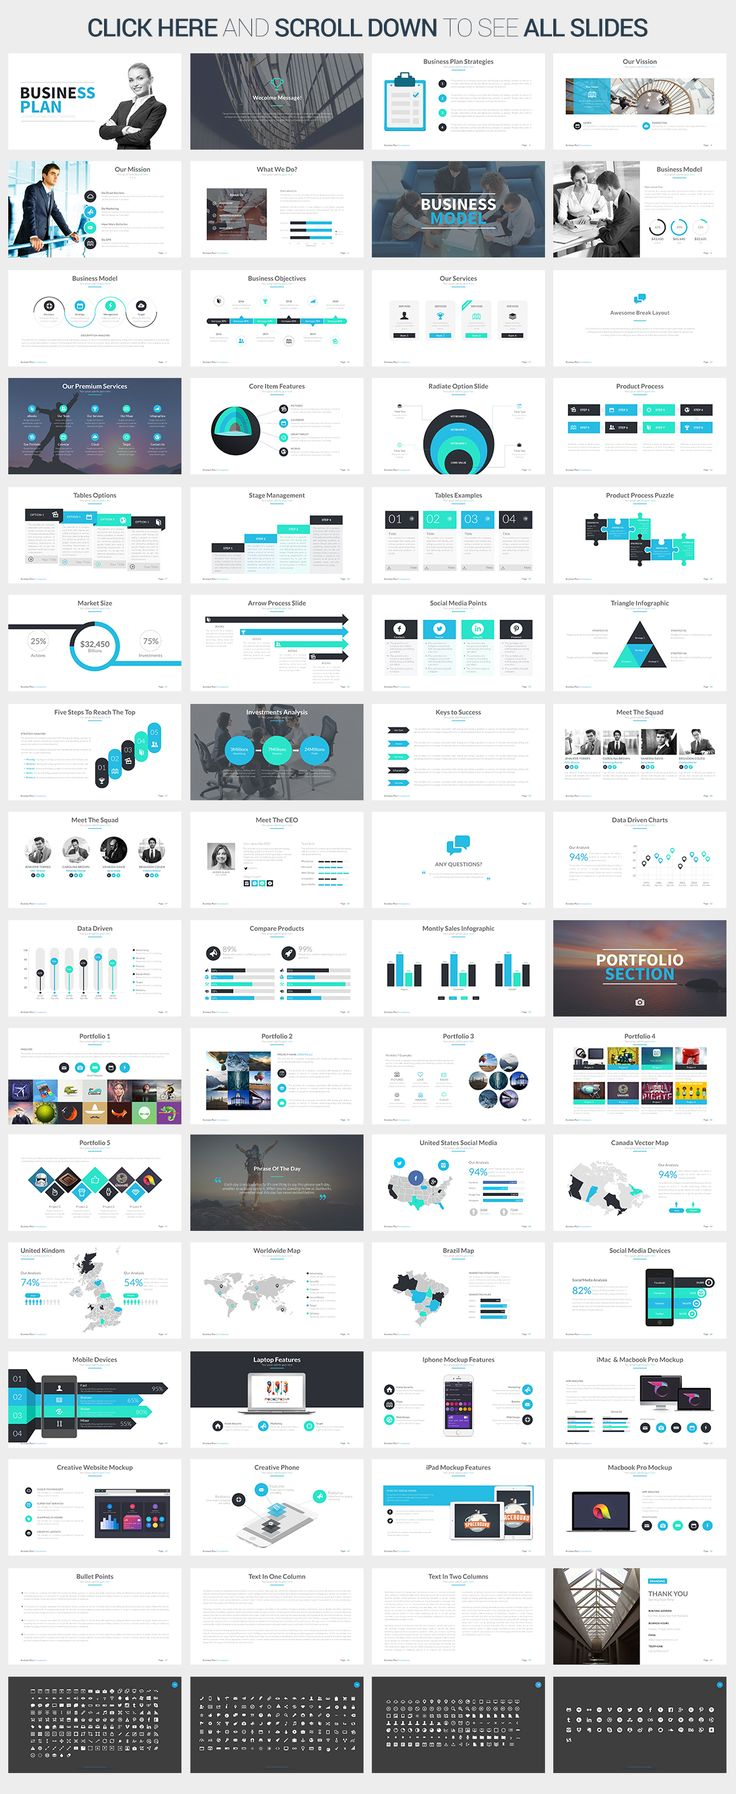 Business Plan - Keynote Template by SlidePro on Creative Market